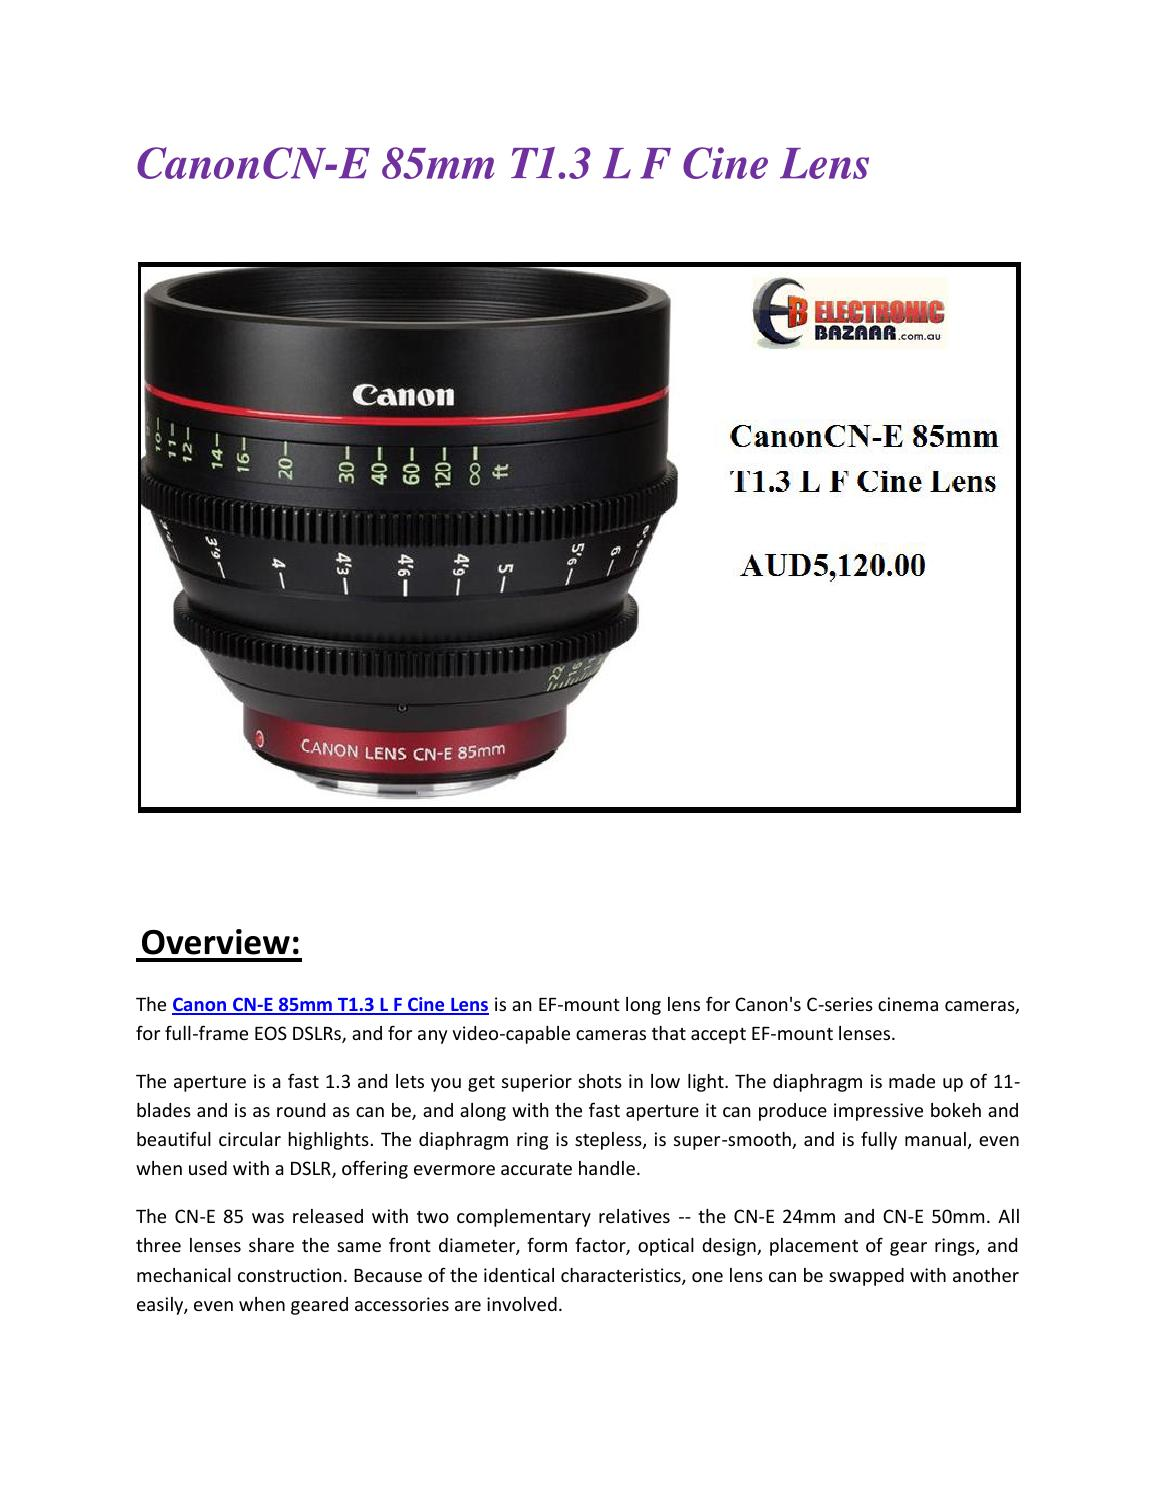 Canoncn E 85mm T1 3 L F Cine Lens By Electronic Bazaar Issuu